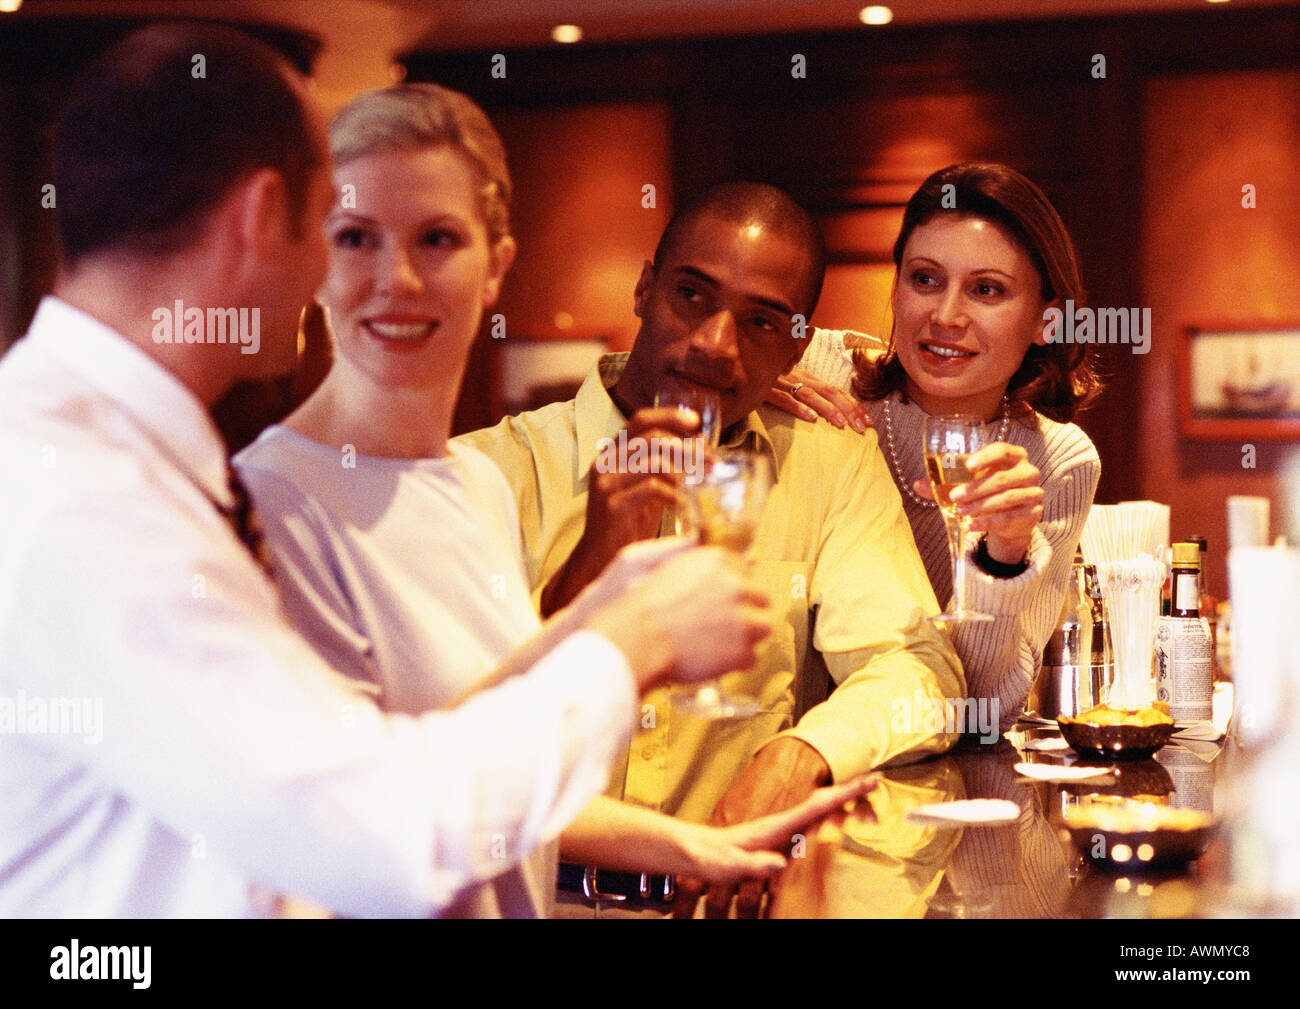 Group of business people raising glasses at bar - Stock Image